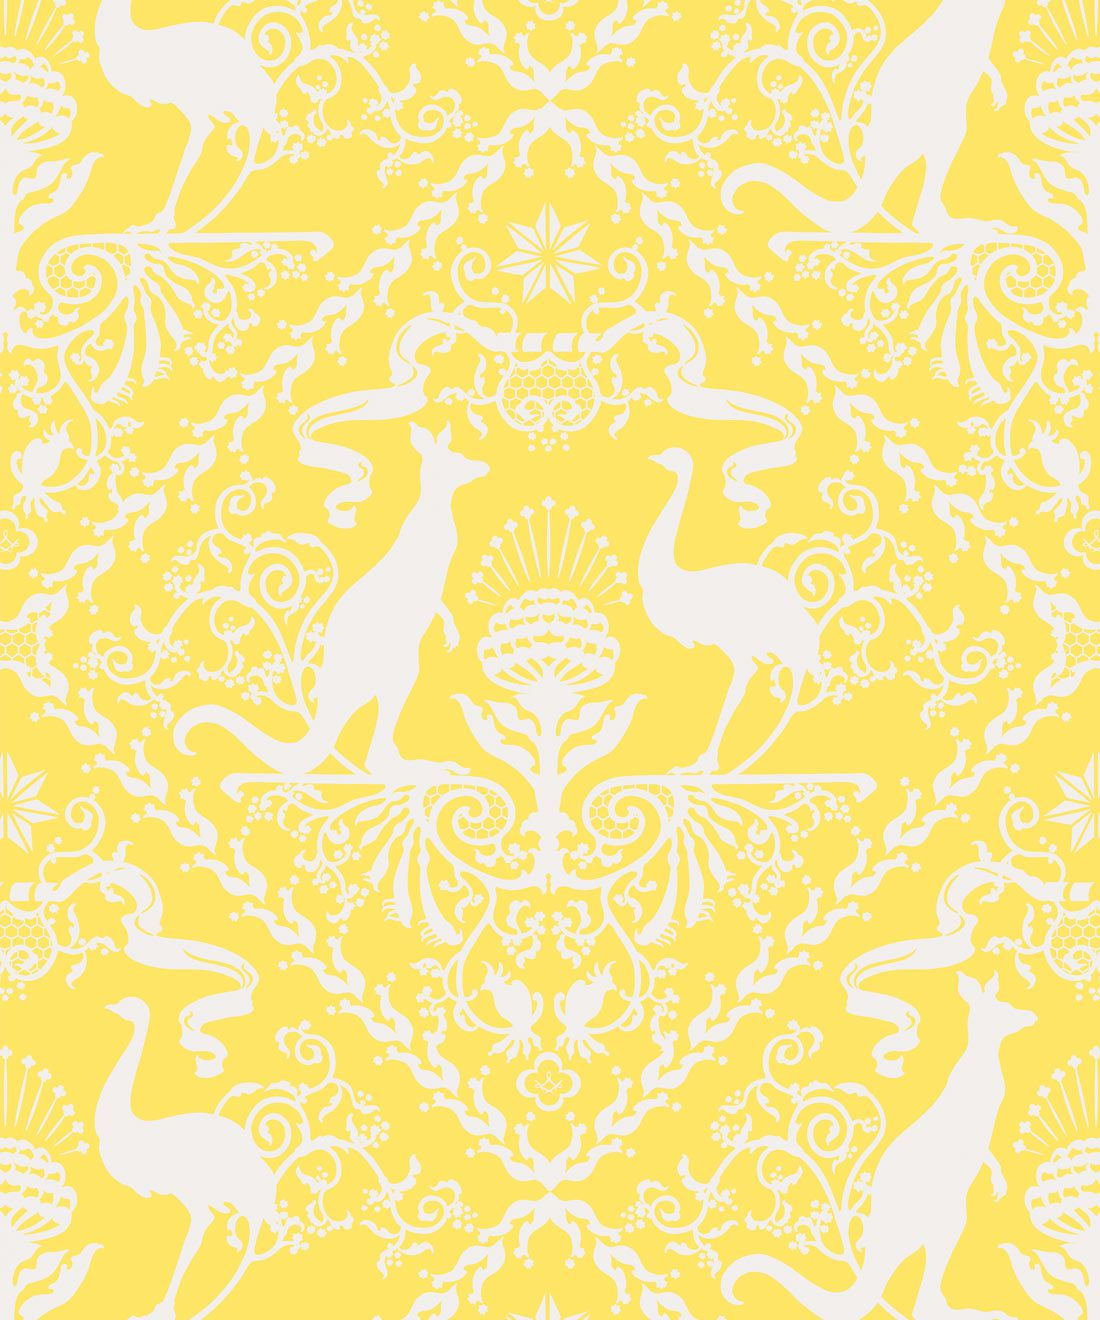 In Australia We Trust Sunshine • Australian Wallpaper • Australian Coat of Arms • Milton & King Europe • Yellow Wallpaper